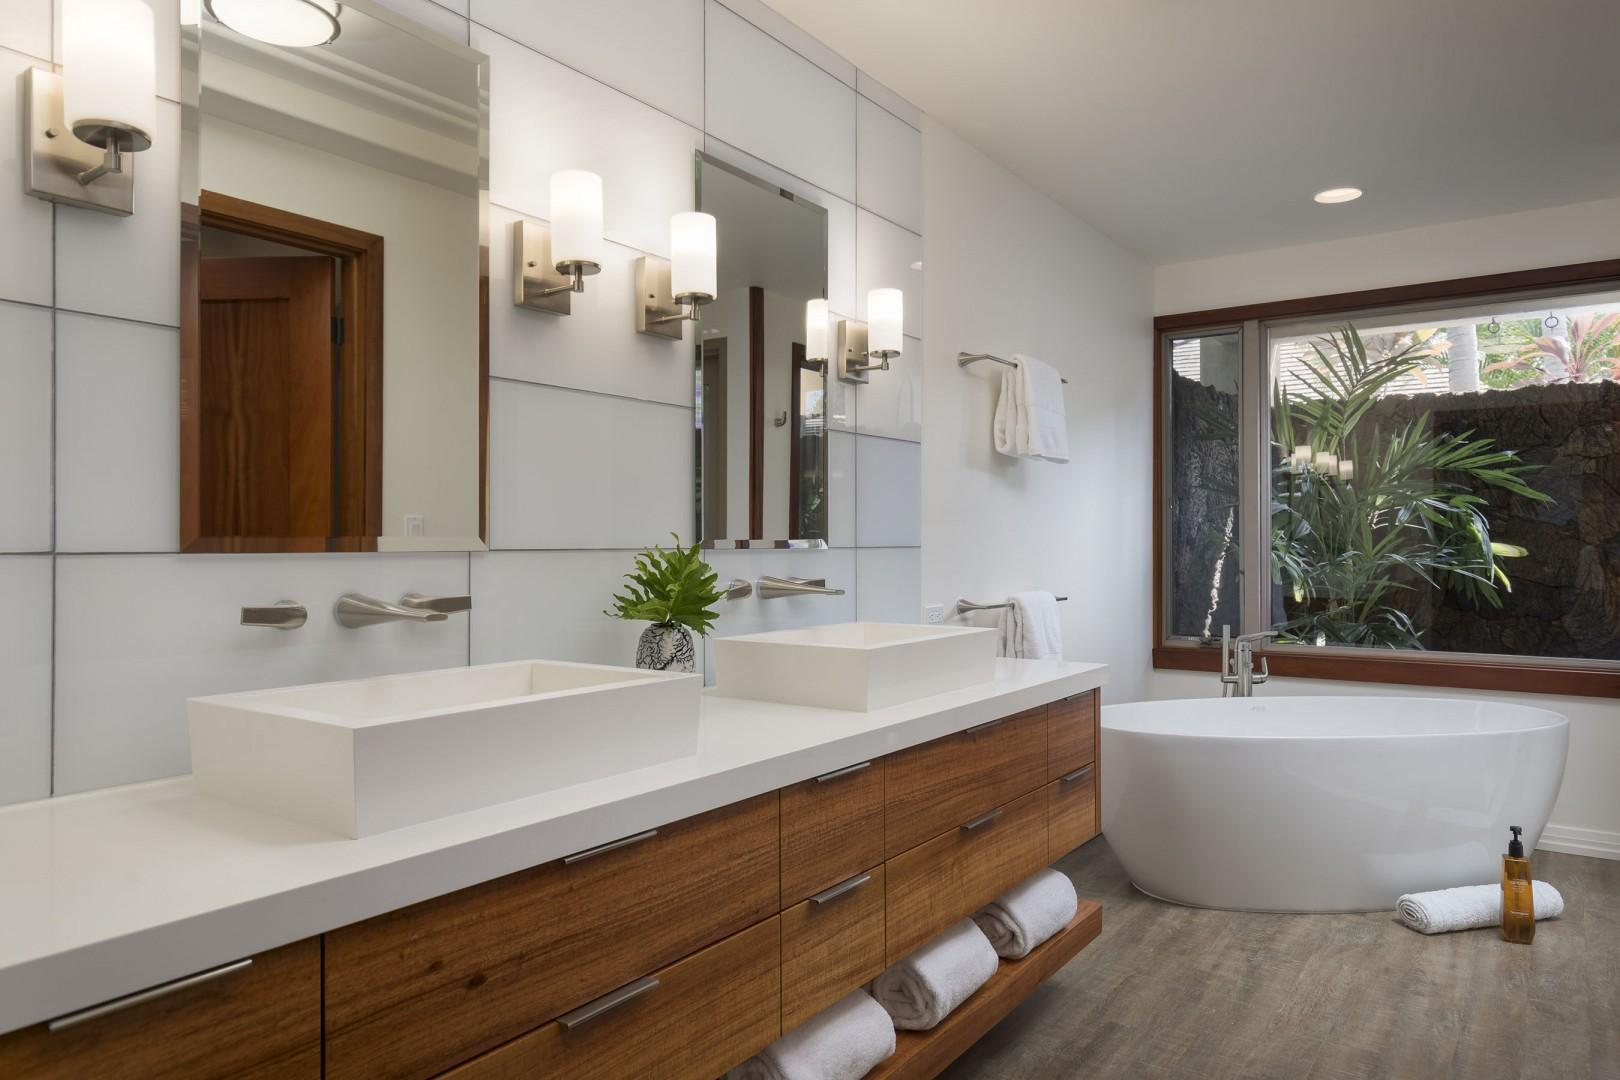 A Master Bath that rivals any 5 star hotel and includes a soaking tub, walk in shower and outdoor shower